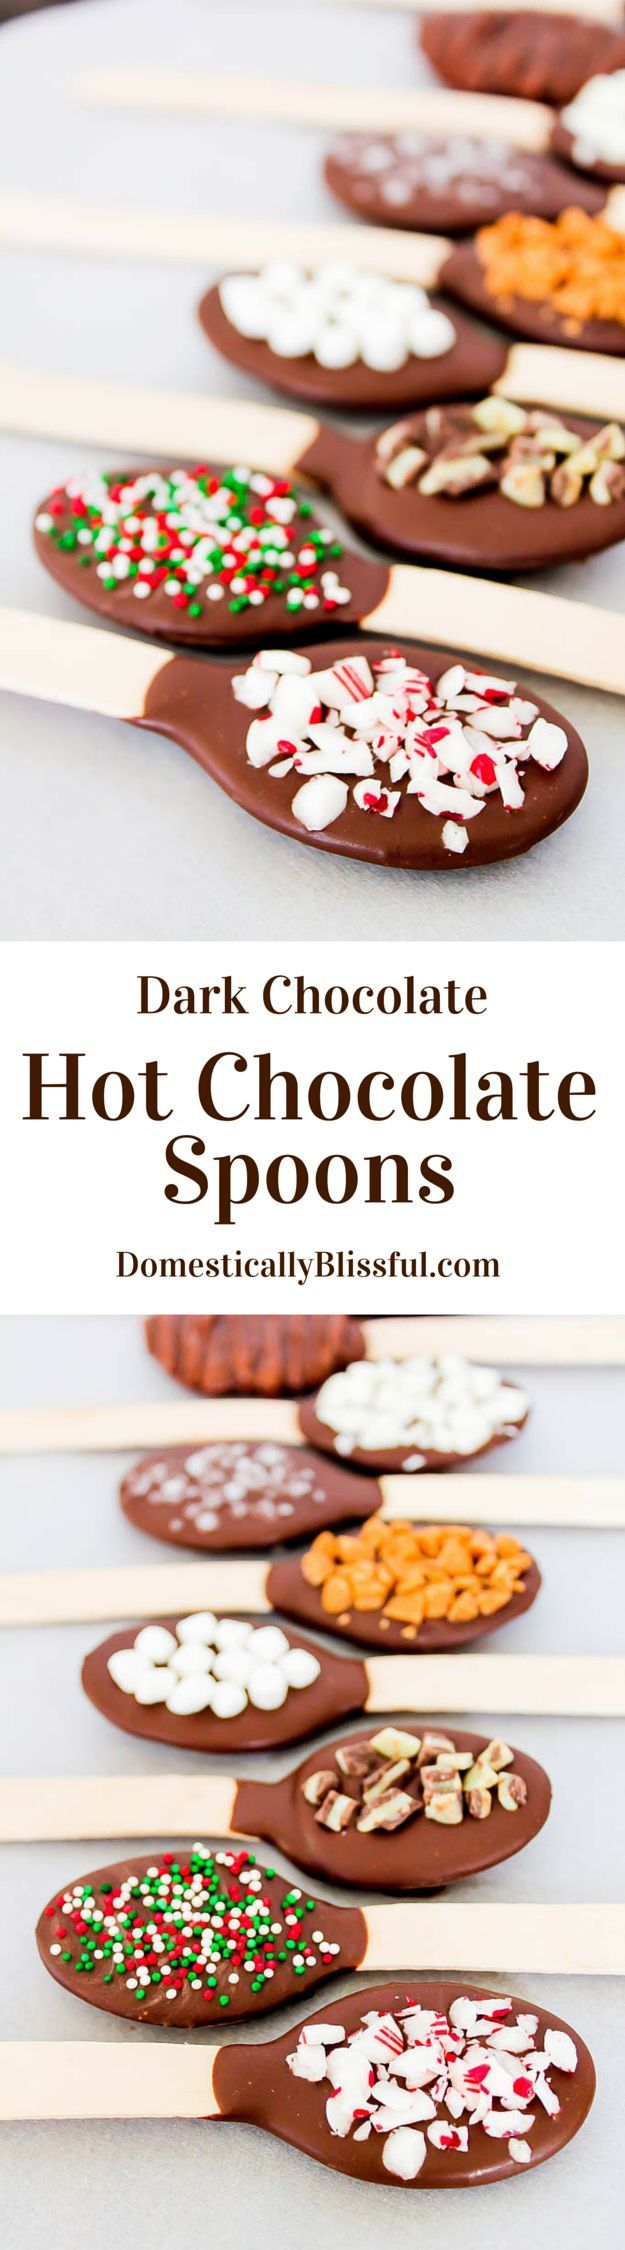 Dark Chocolate Hot Chocolate Spoons are the perfect flavor additions for hot chocolate, they make delicious Christmas presents, & are great for winter parties!